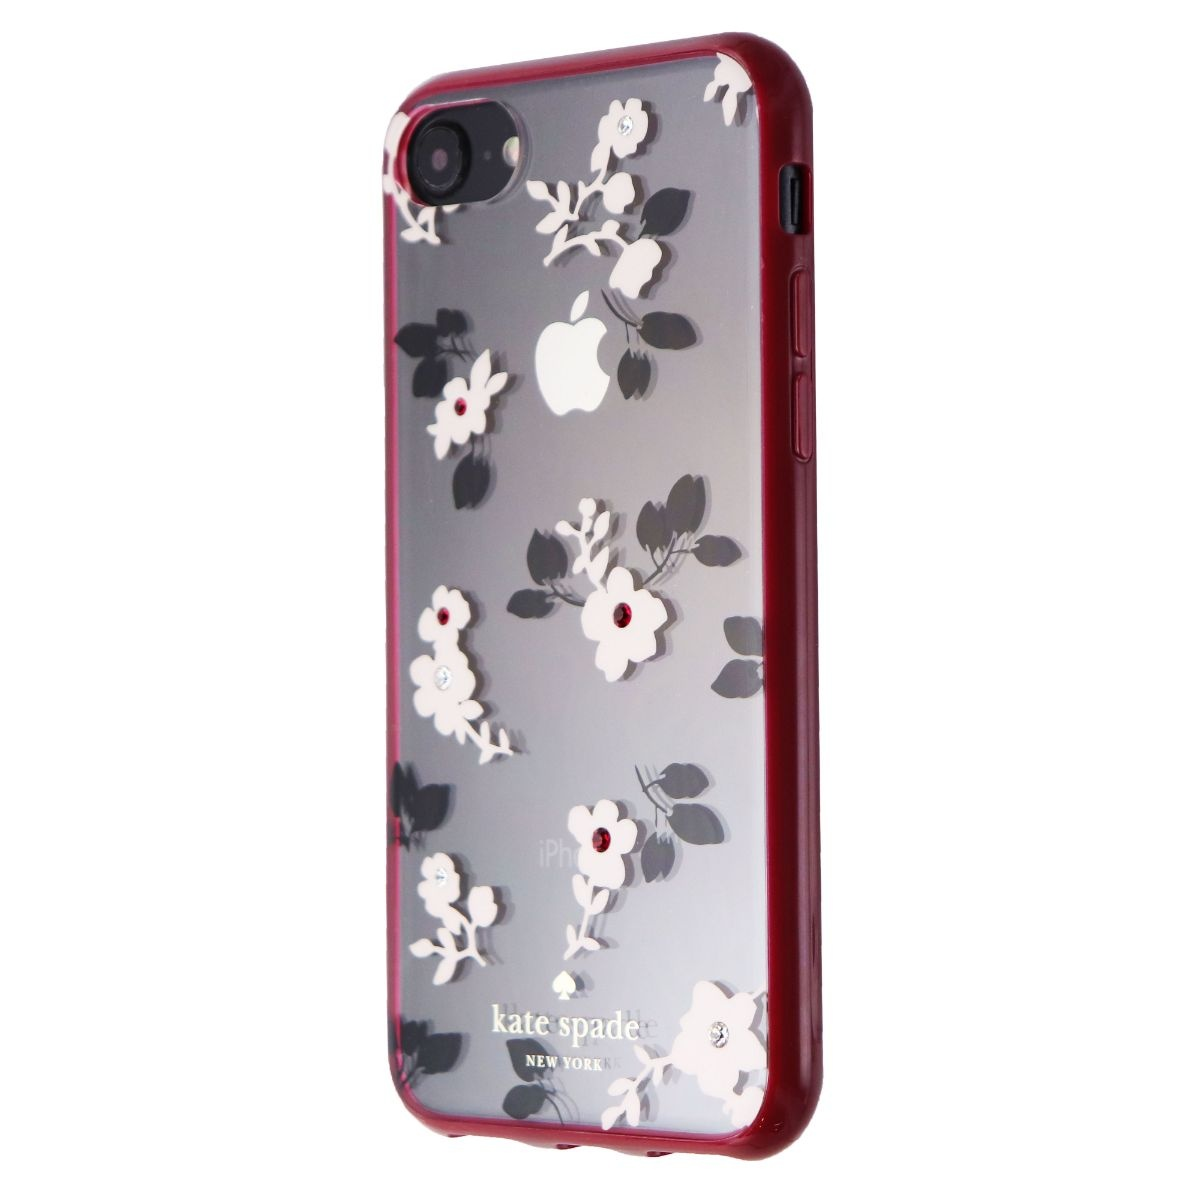 Kate Spade Protective Case for iPhone 7 - Jeweled Daisy Garden (Clear / Flowers)